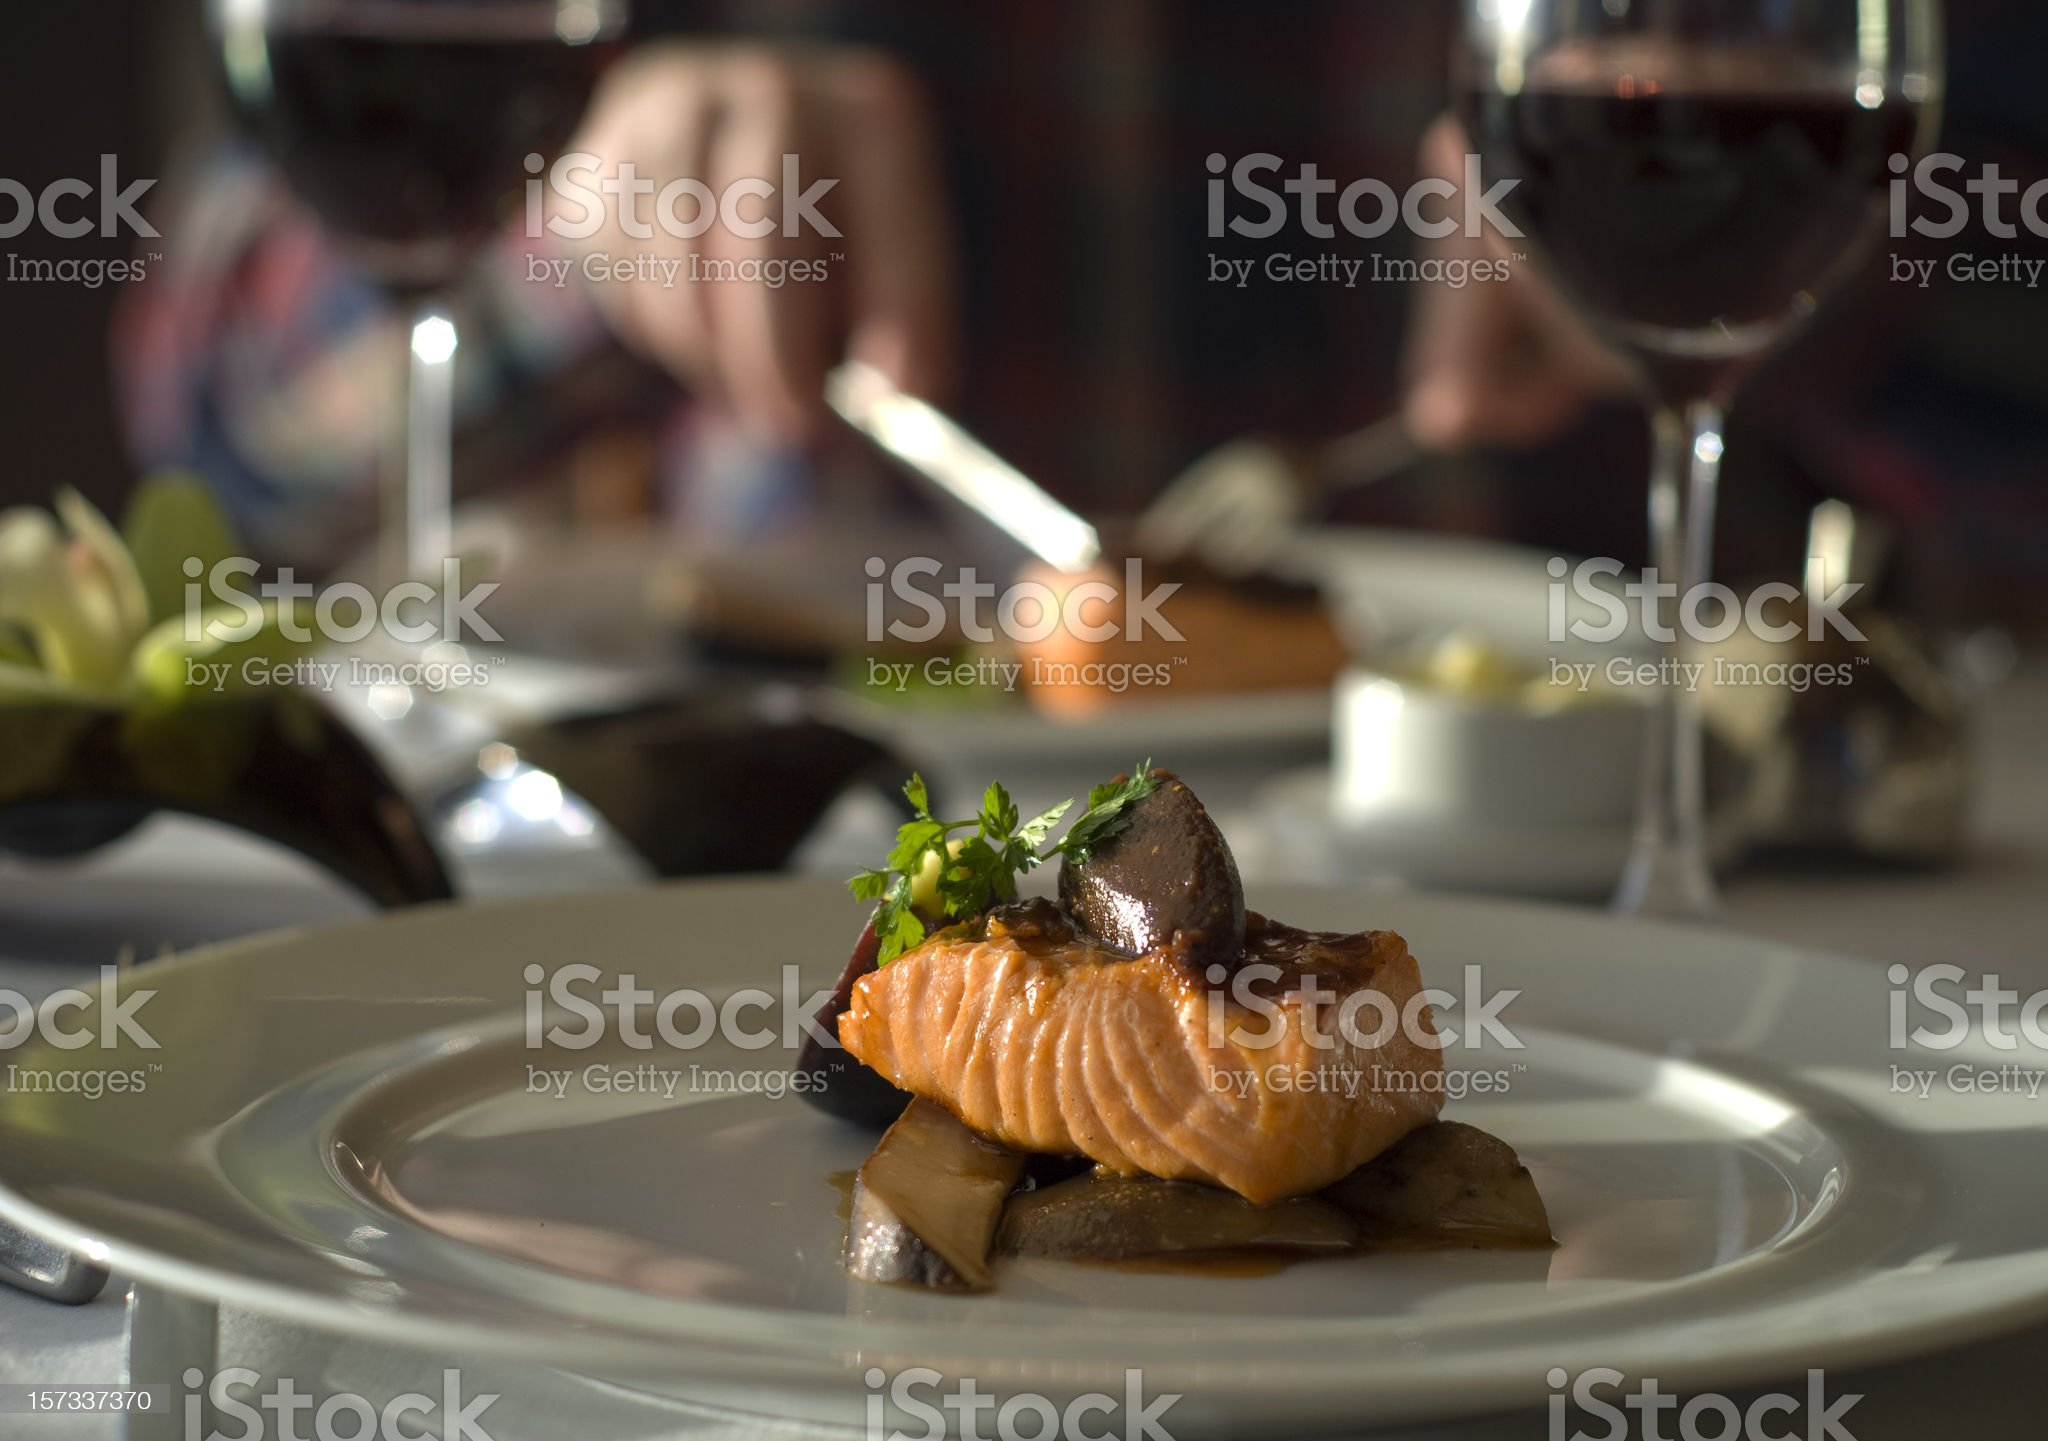 Fine Dining Table for Two, Restaurant Dinner; Salmon Fish Seafood royalty-free stock photo